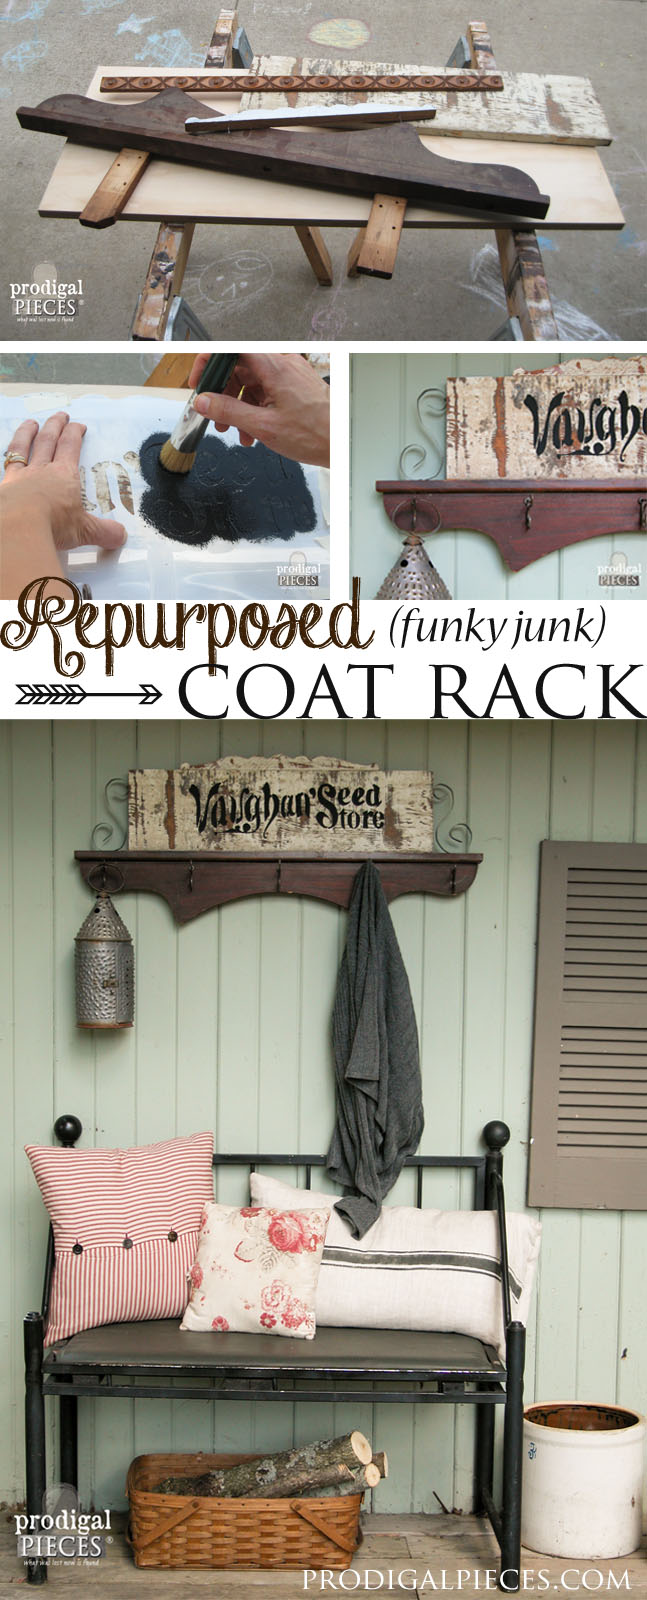 Create a repurposed coat rack using cast off barn wood and furniture pieces | Prodigal Pieces | www.prodigalpieces.com